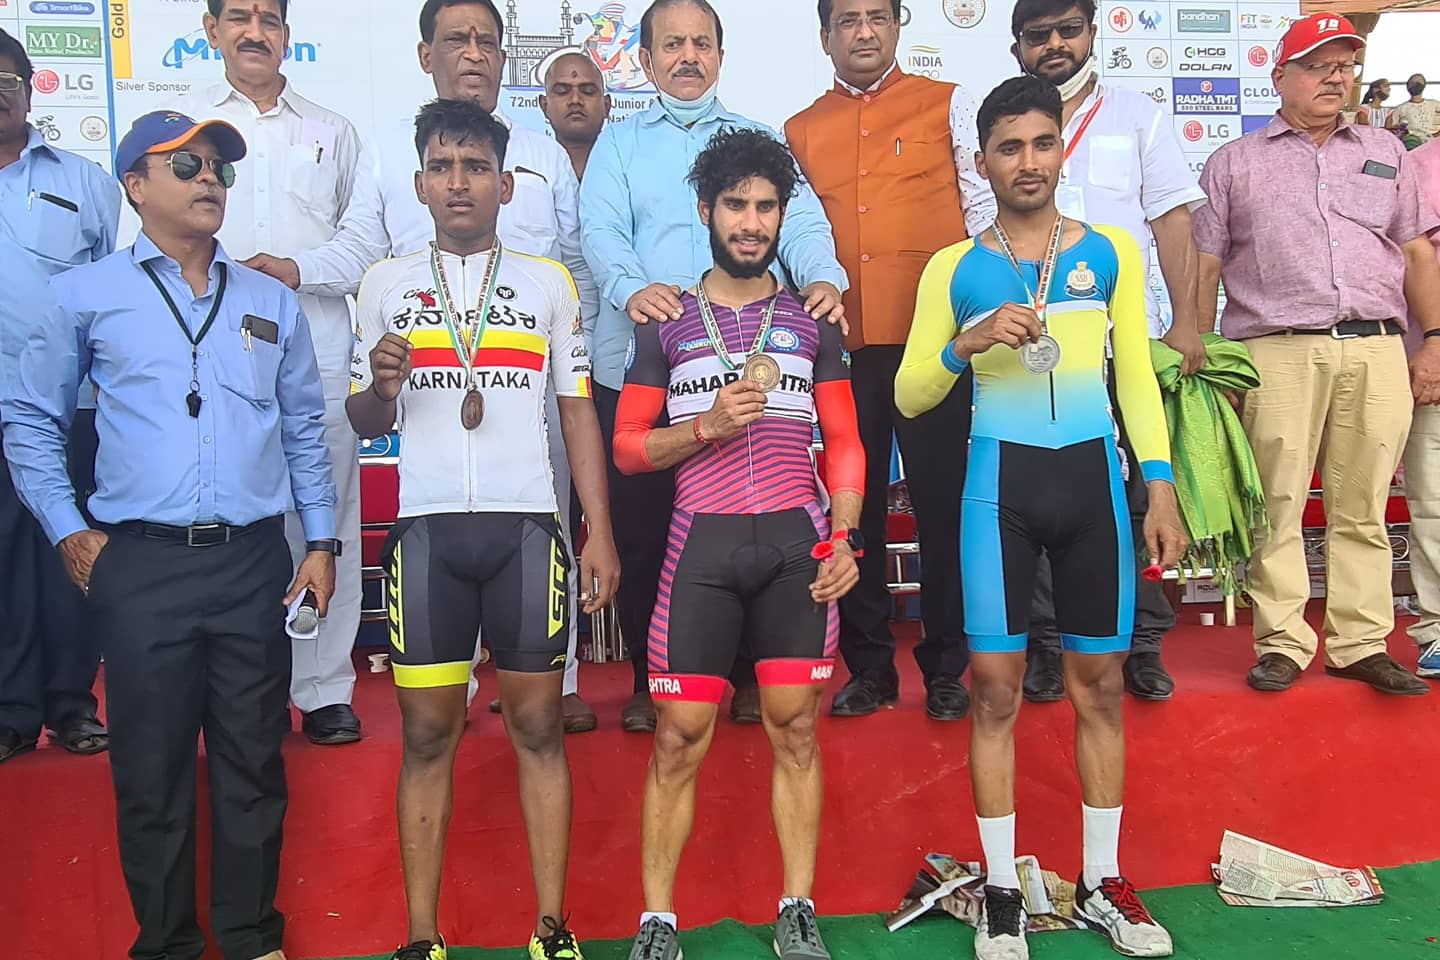 Surya Thathu at Track National Championship in Hyderabad